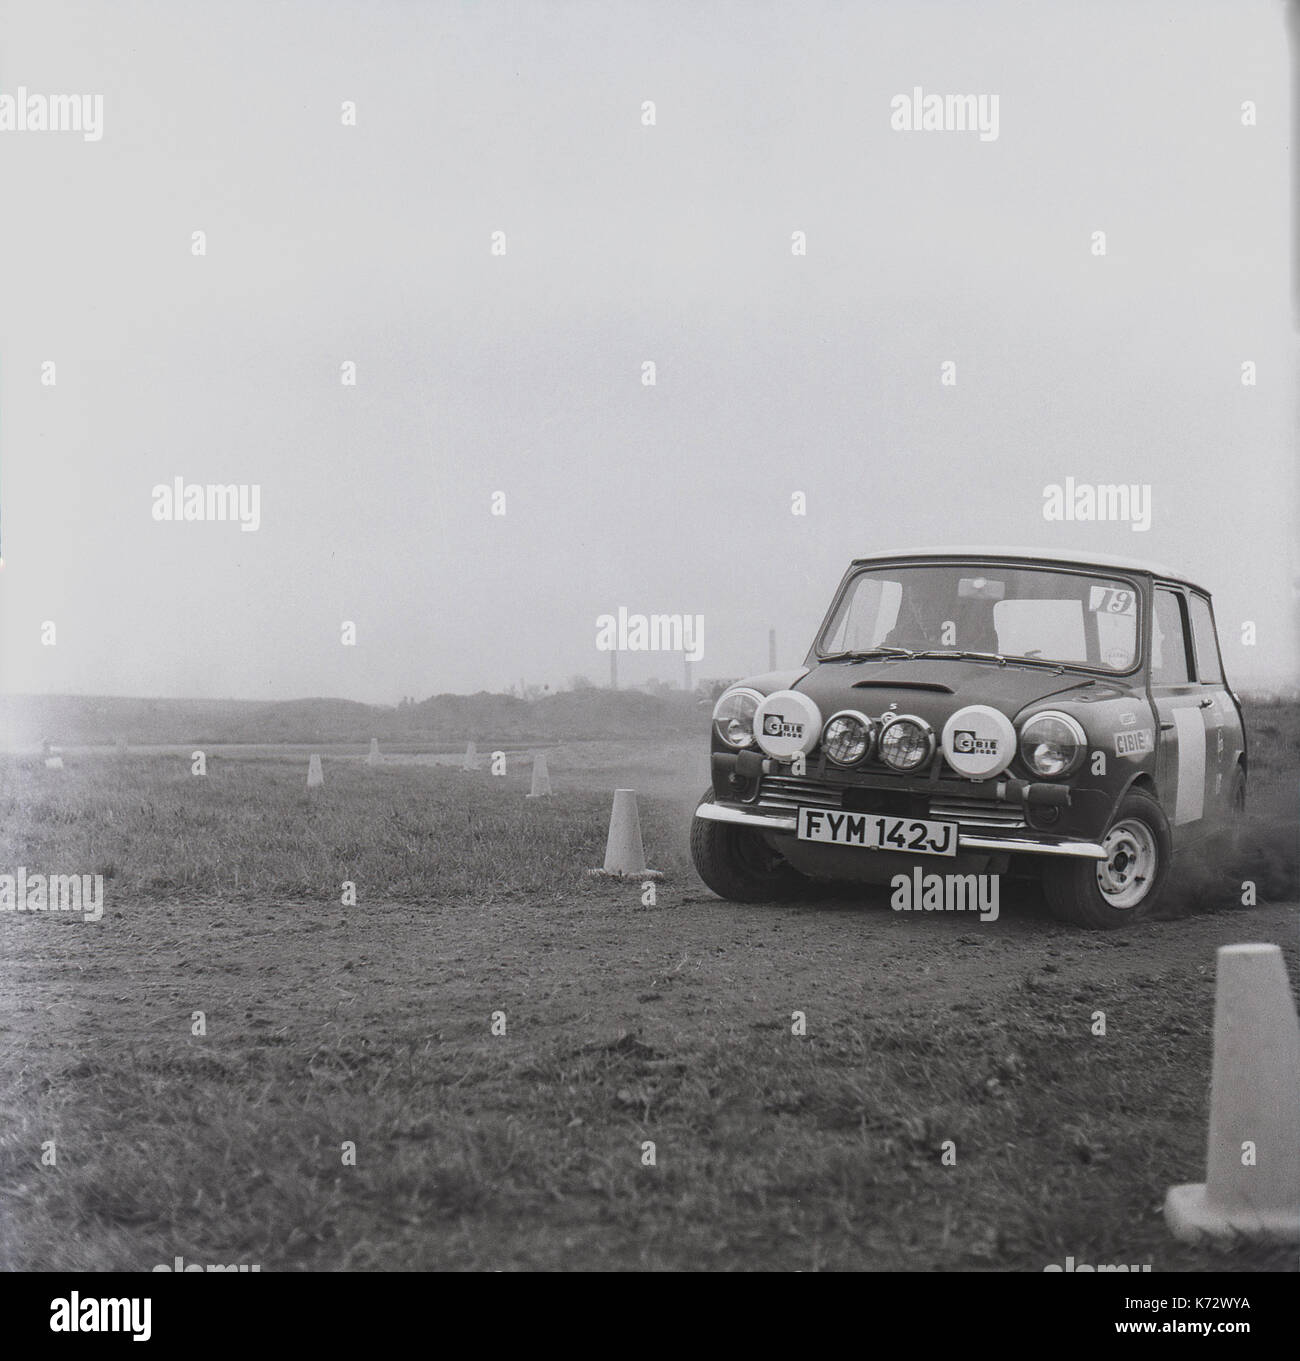 1970s, historical, a specially modified works mini taking a corner at speed while racing on a gravel test track - Stock Image